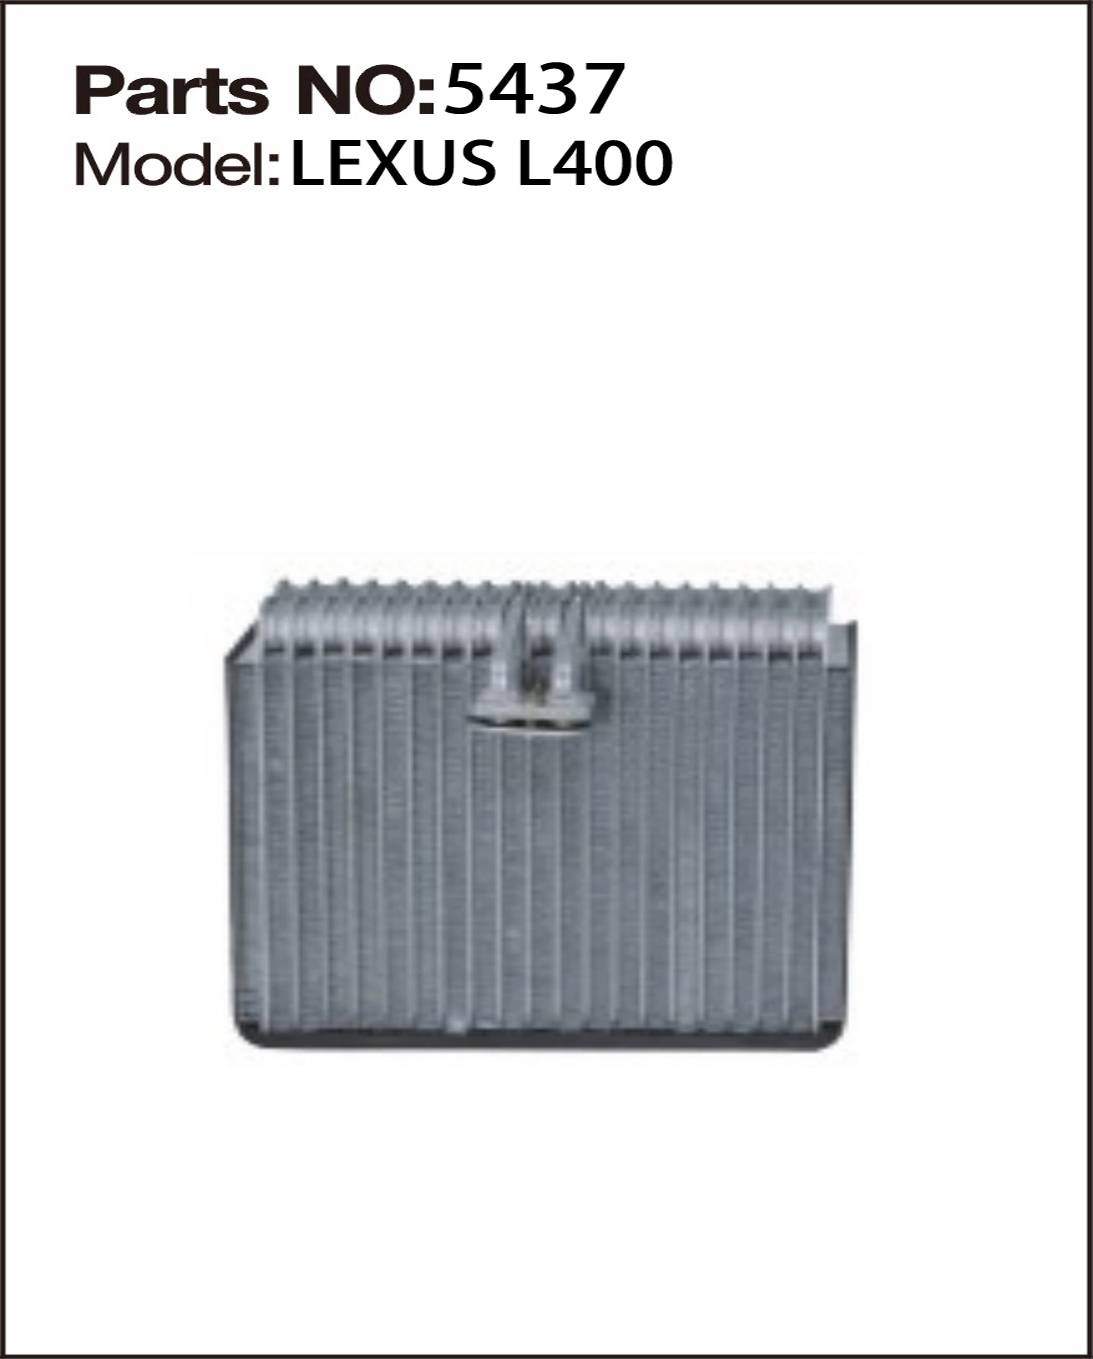 LUXUS evaporator auto ac parts